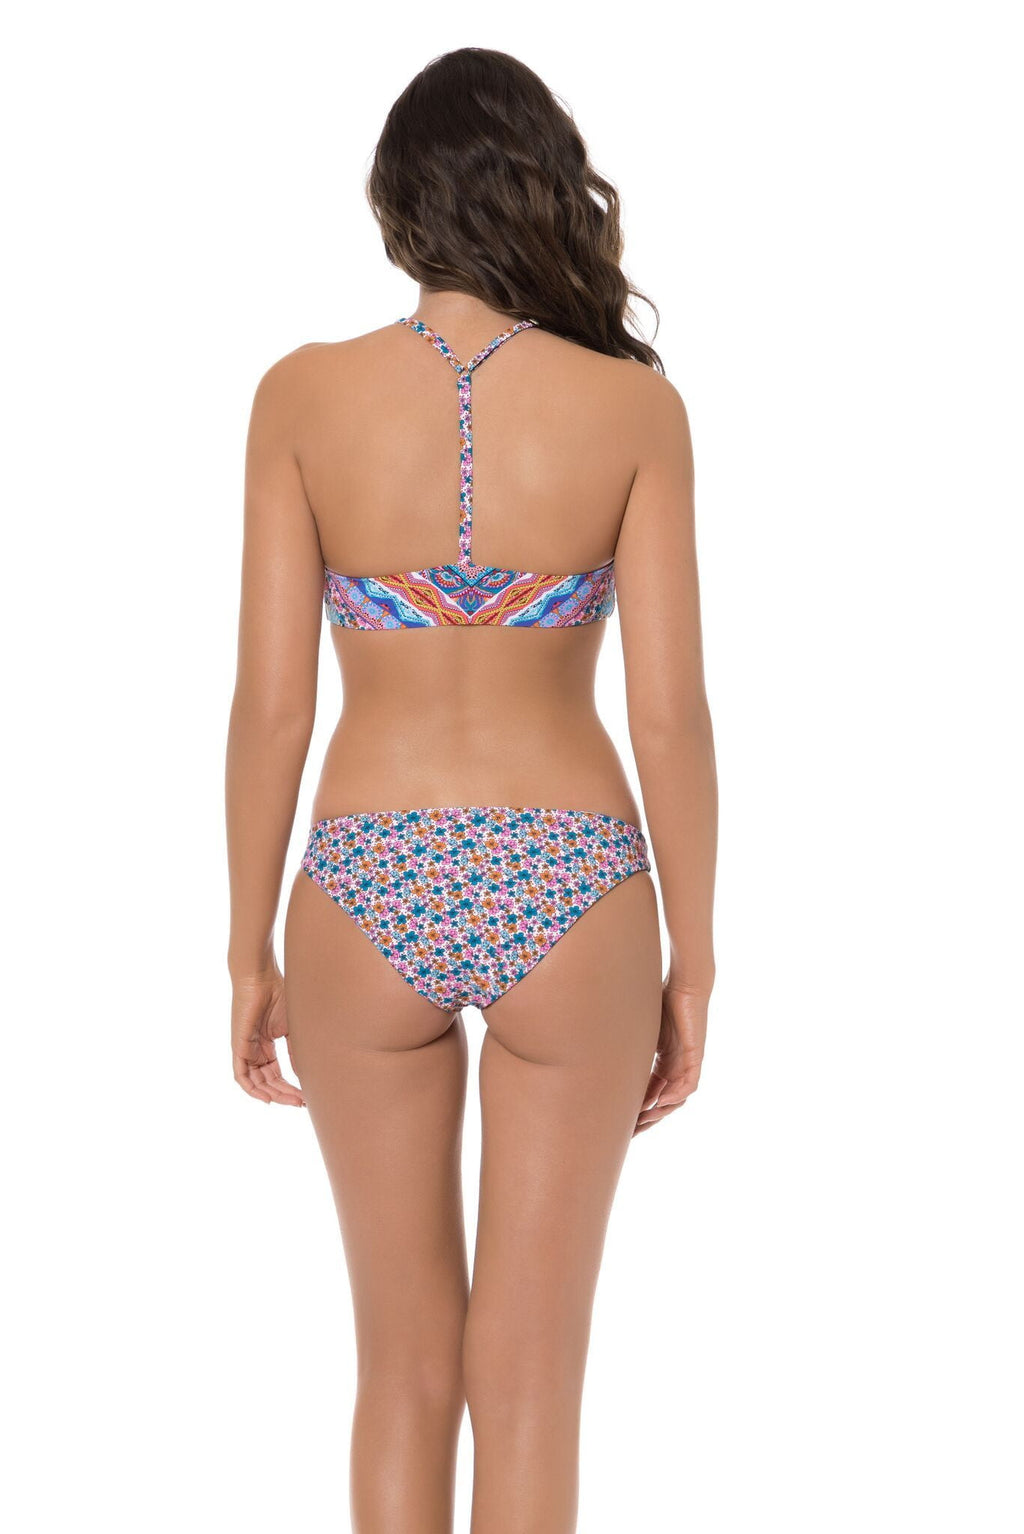 Red Carter Laurel Cannon Blossom Bikini Bottom RCLC117716: